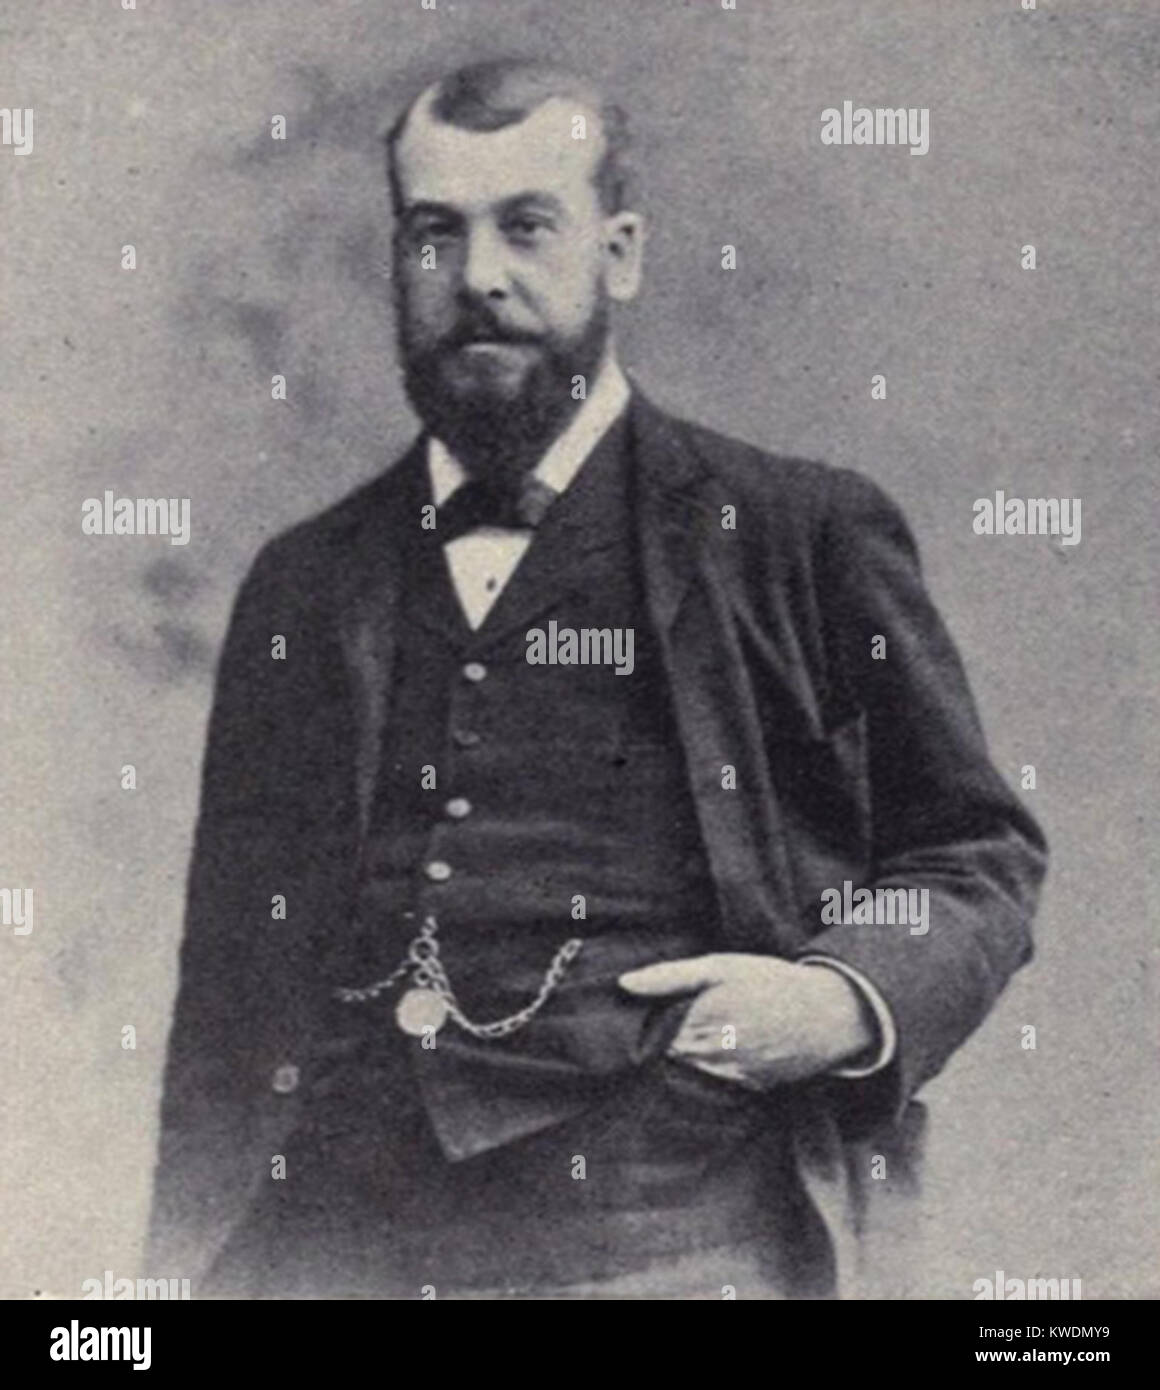 Charles Alfred Cruft, British showman who founded the Crufts dog show - Stock Image